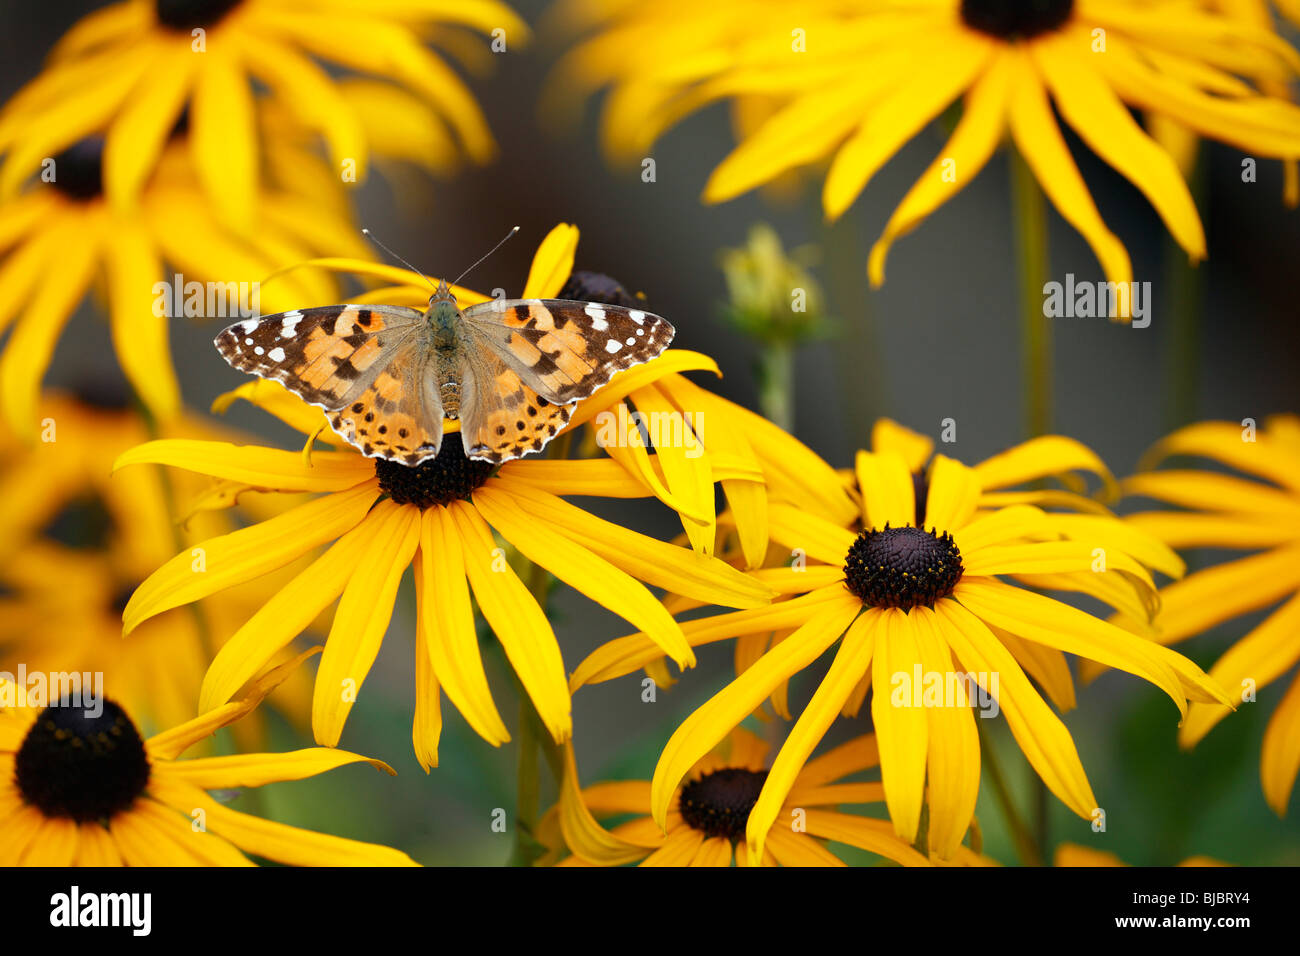 Painted Lady (Vanessa cardui), butterfly feeding on Black eyed Susan(Rudbeckia hirta), in garden, Germany - Stock Image